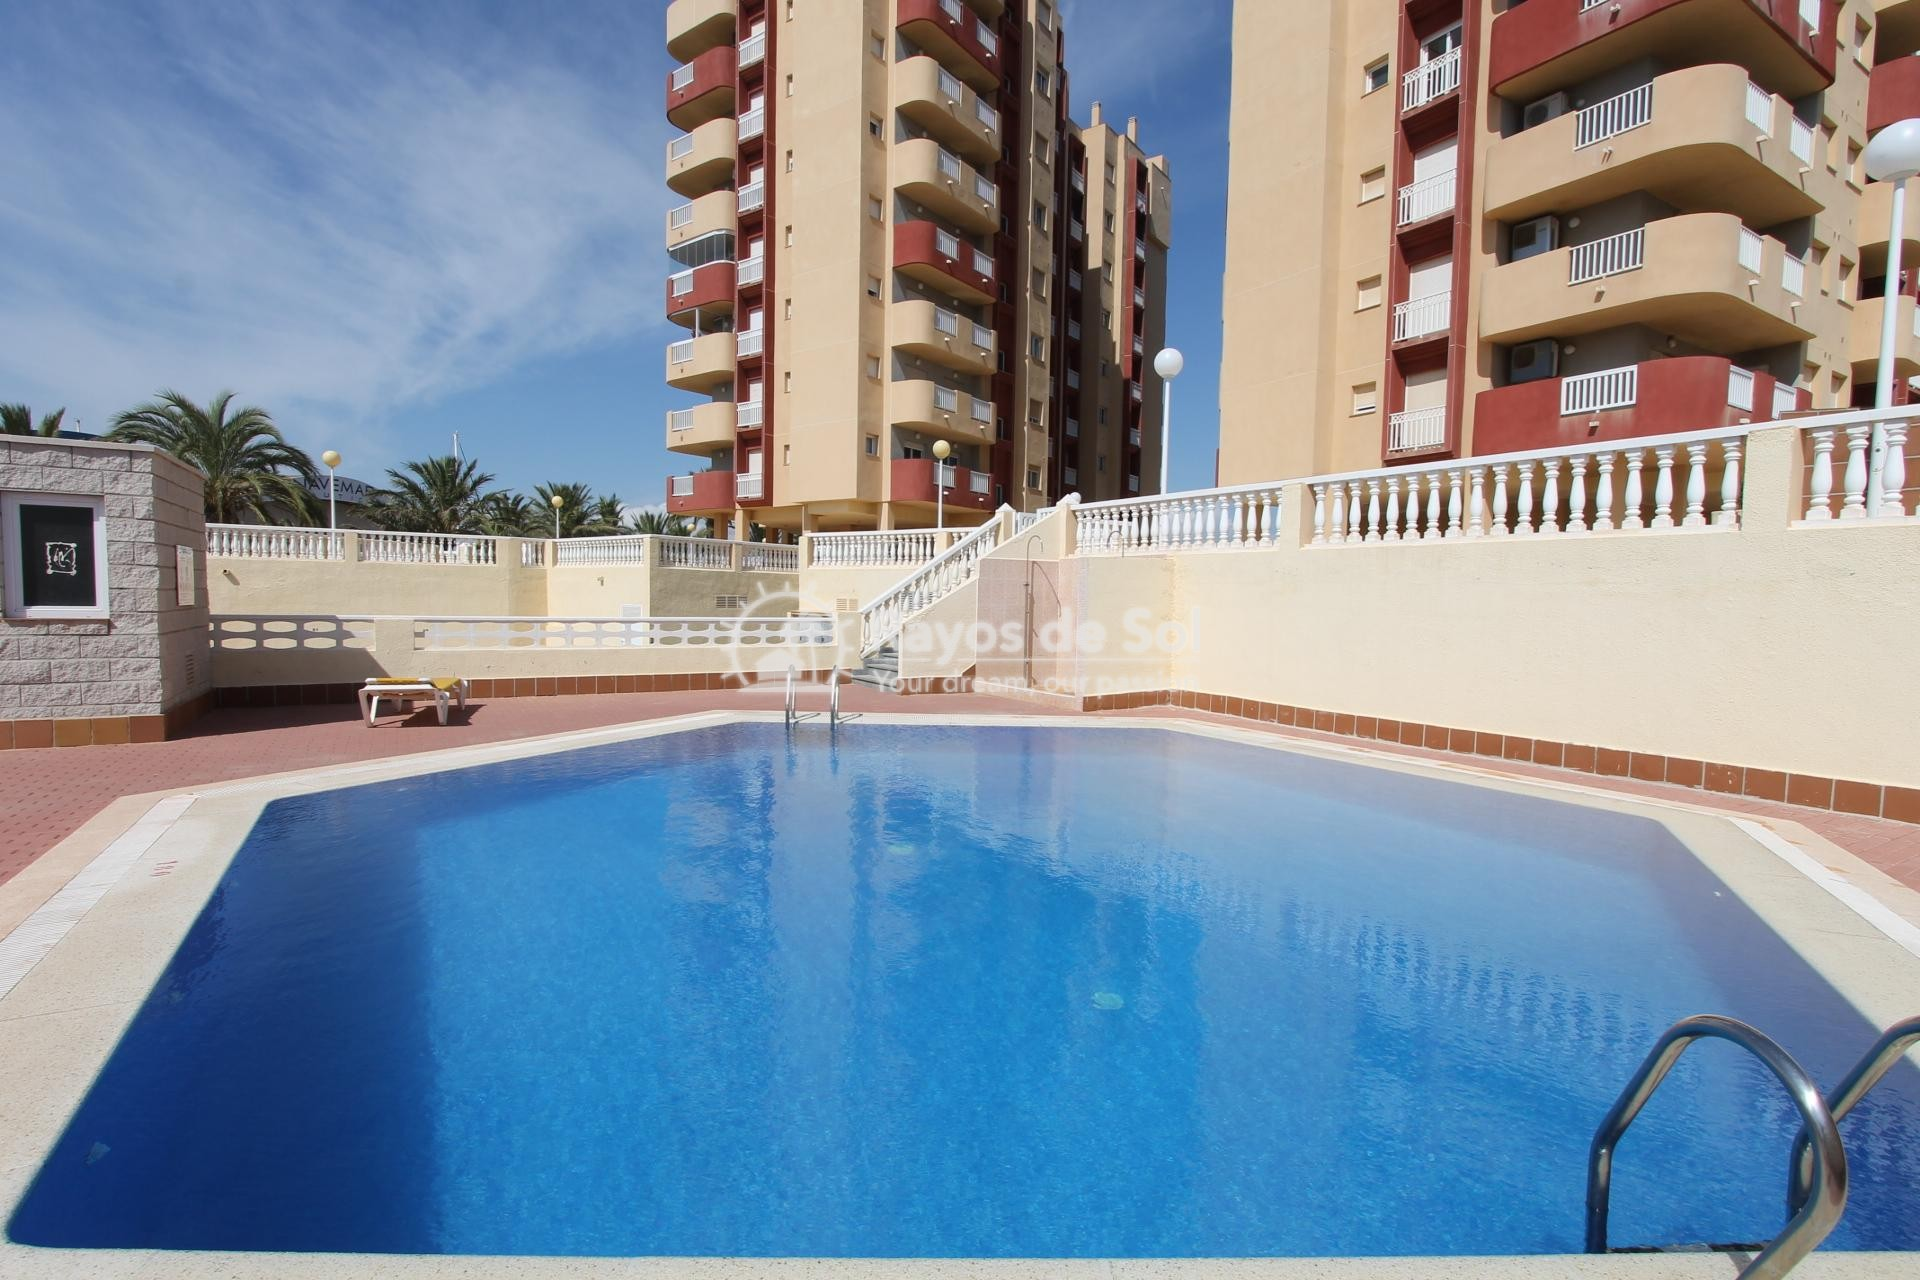 Apartment  in La Manga del Mar Menor, Costa Cálida (mp276) - 28